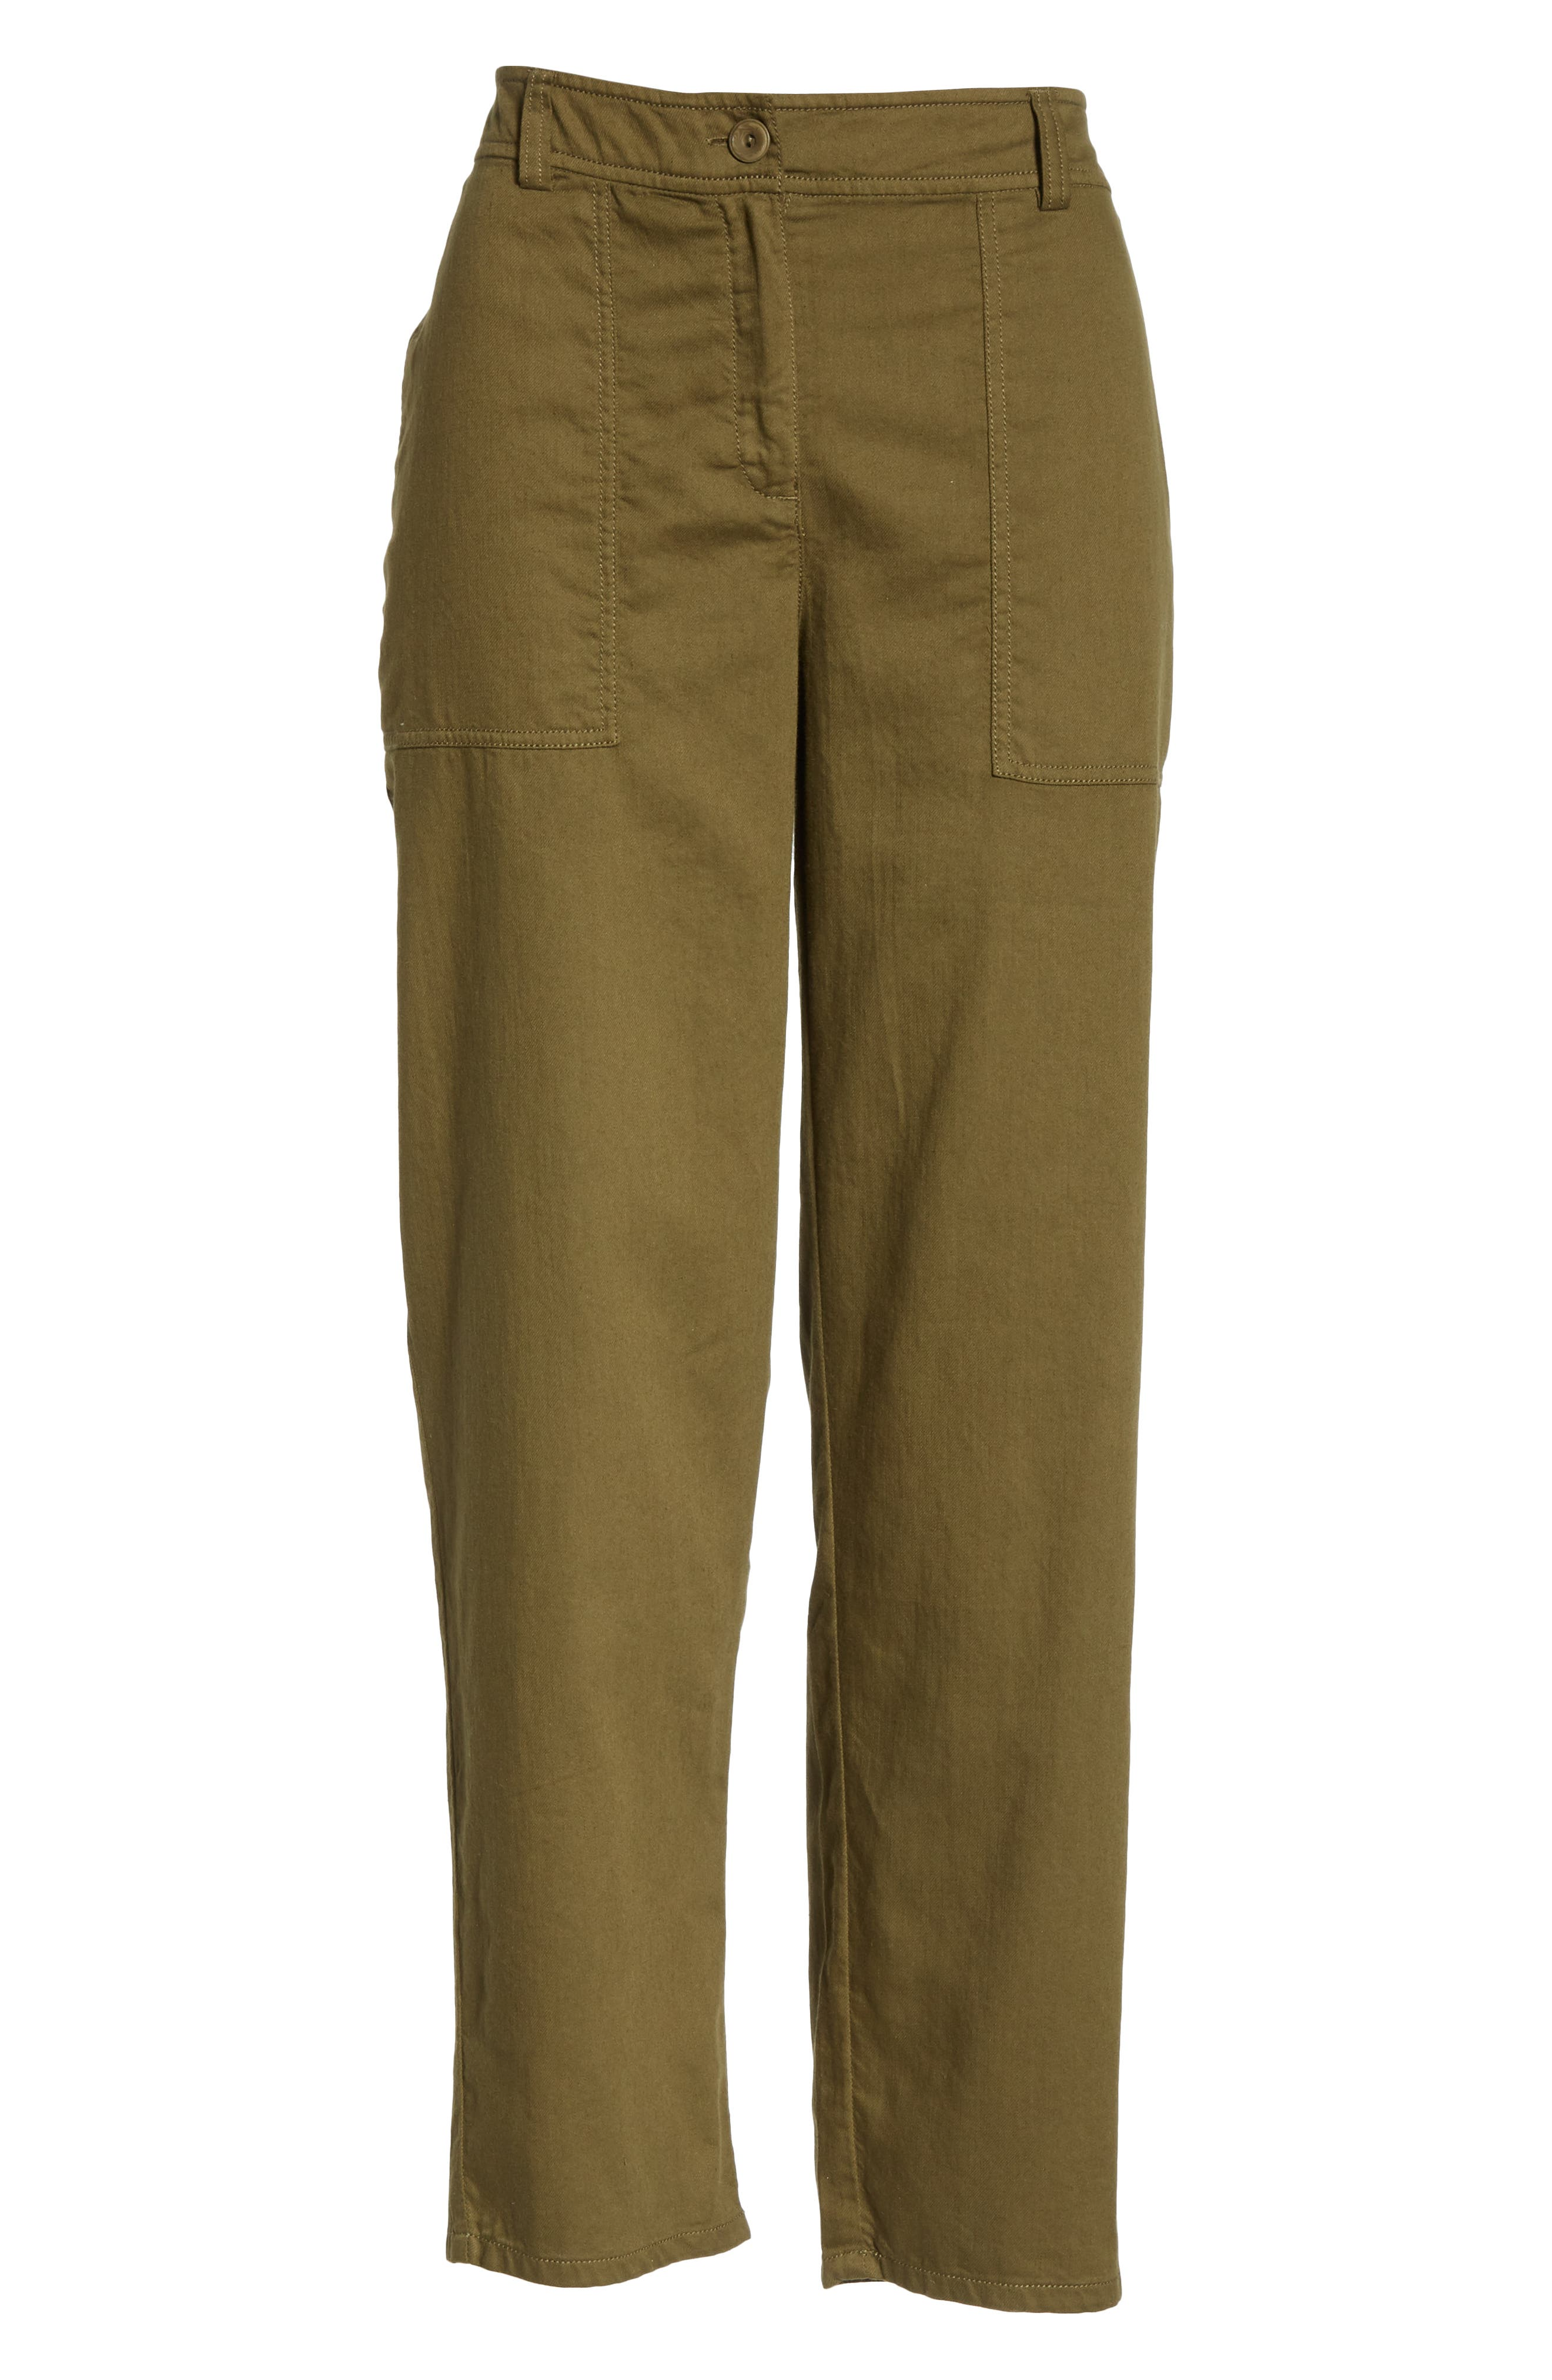 EILEEN FISHER, Slouchy Ankle Pants, Alternate thumbnail 7, color, OLIVE